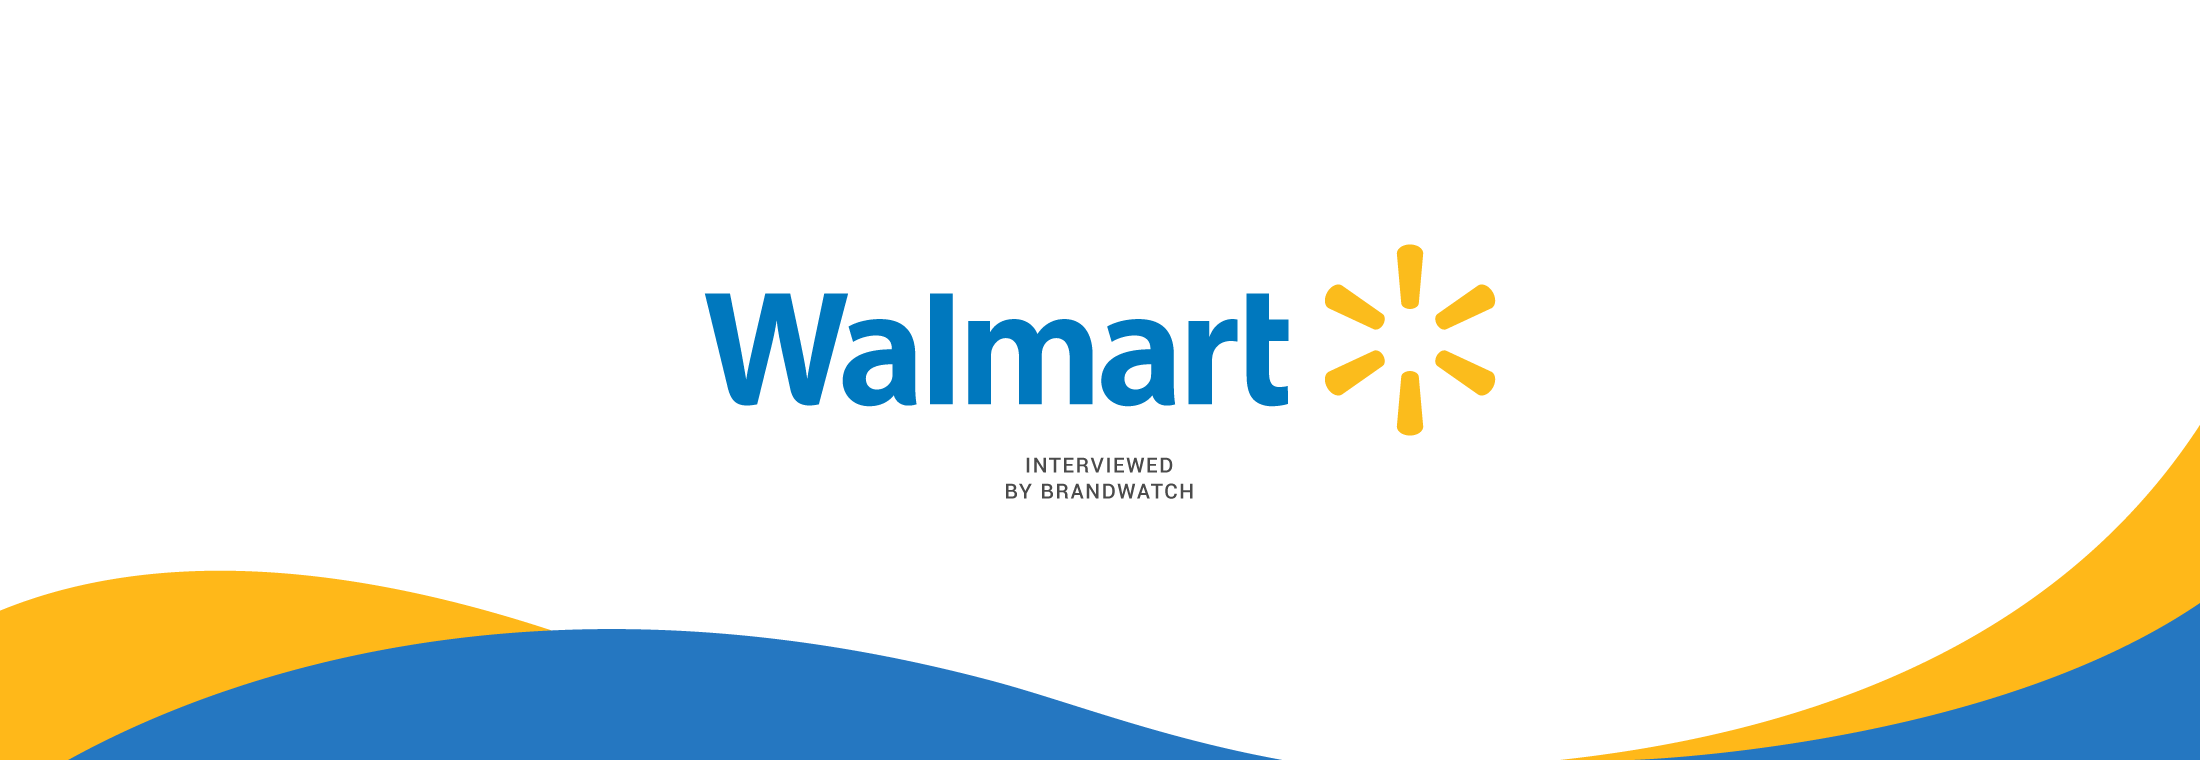 Walmart Png (103+ images in Collection) Page 1.